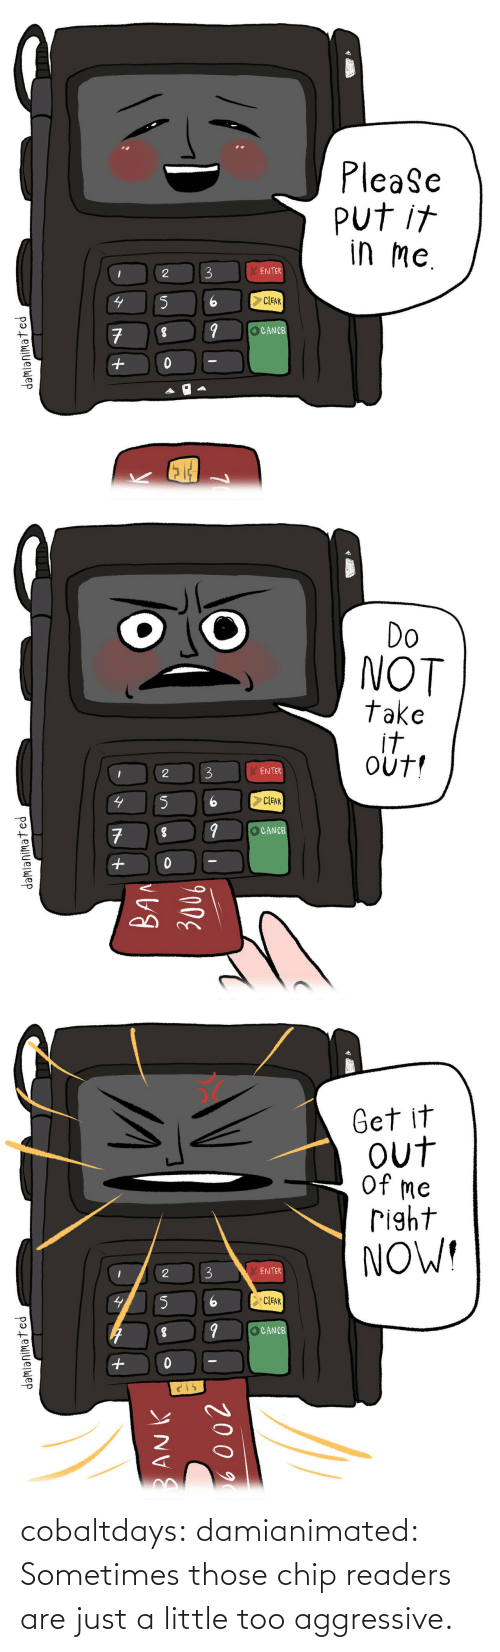 gif: cobaltdays: damianimated: Sometimes those chip readers are just a little too aggressive.